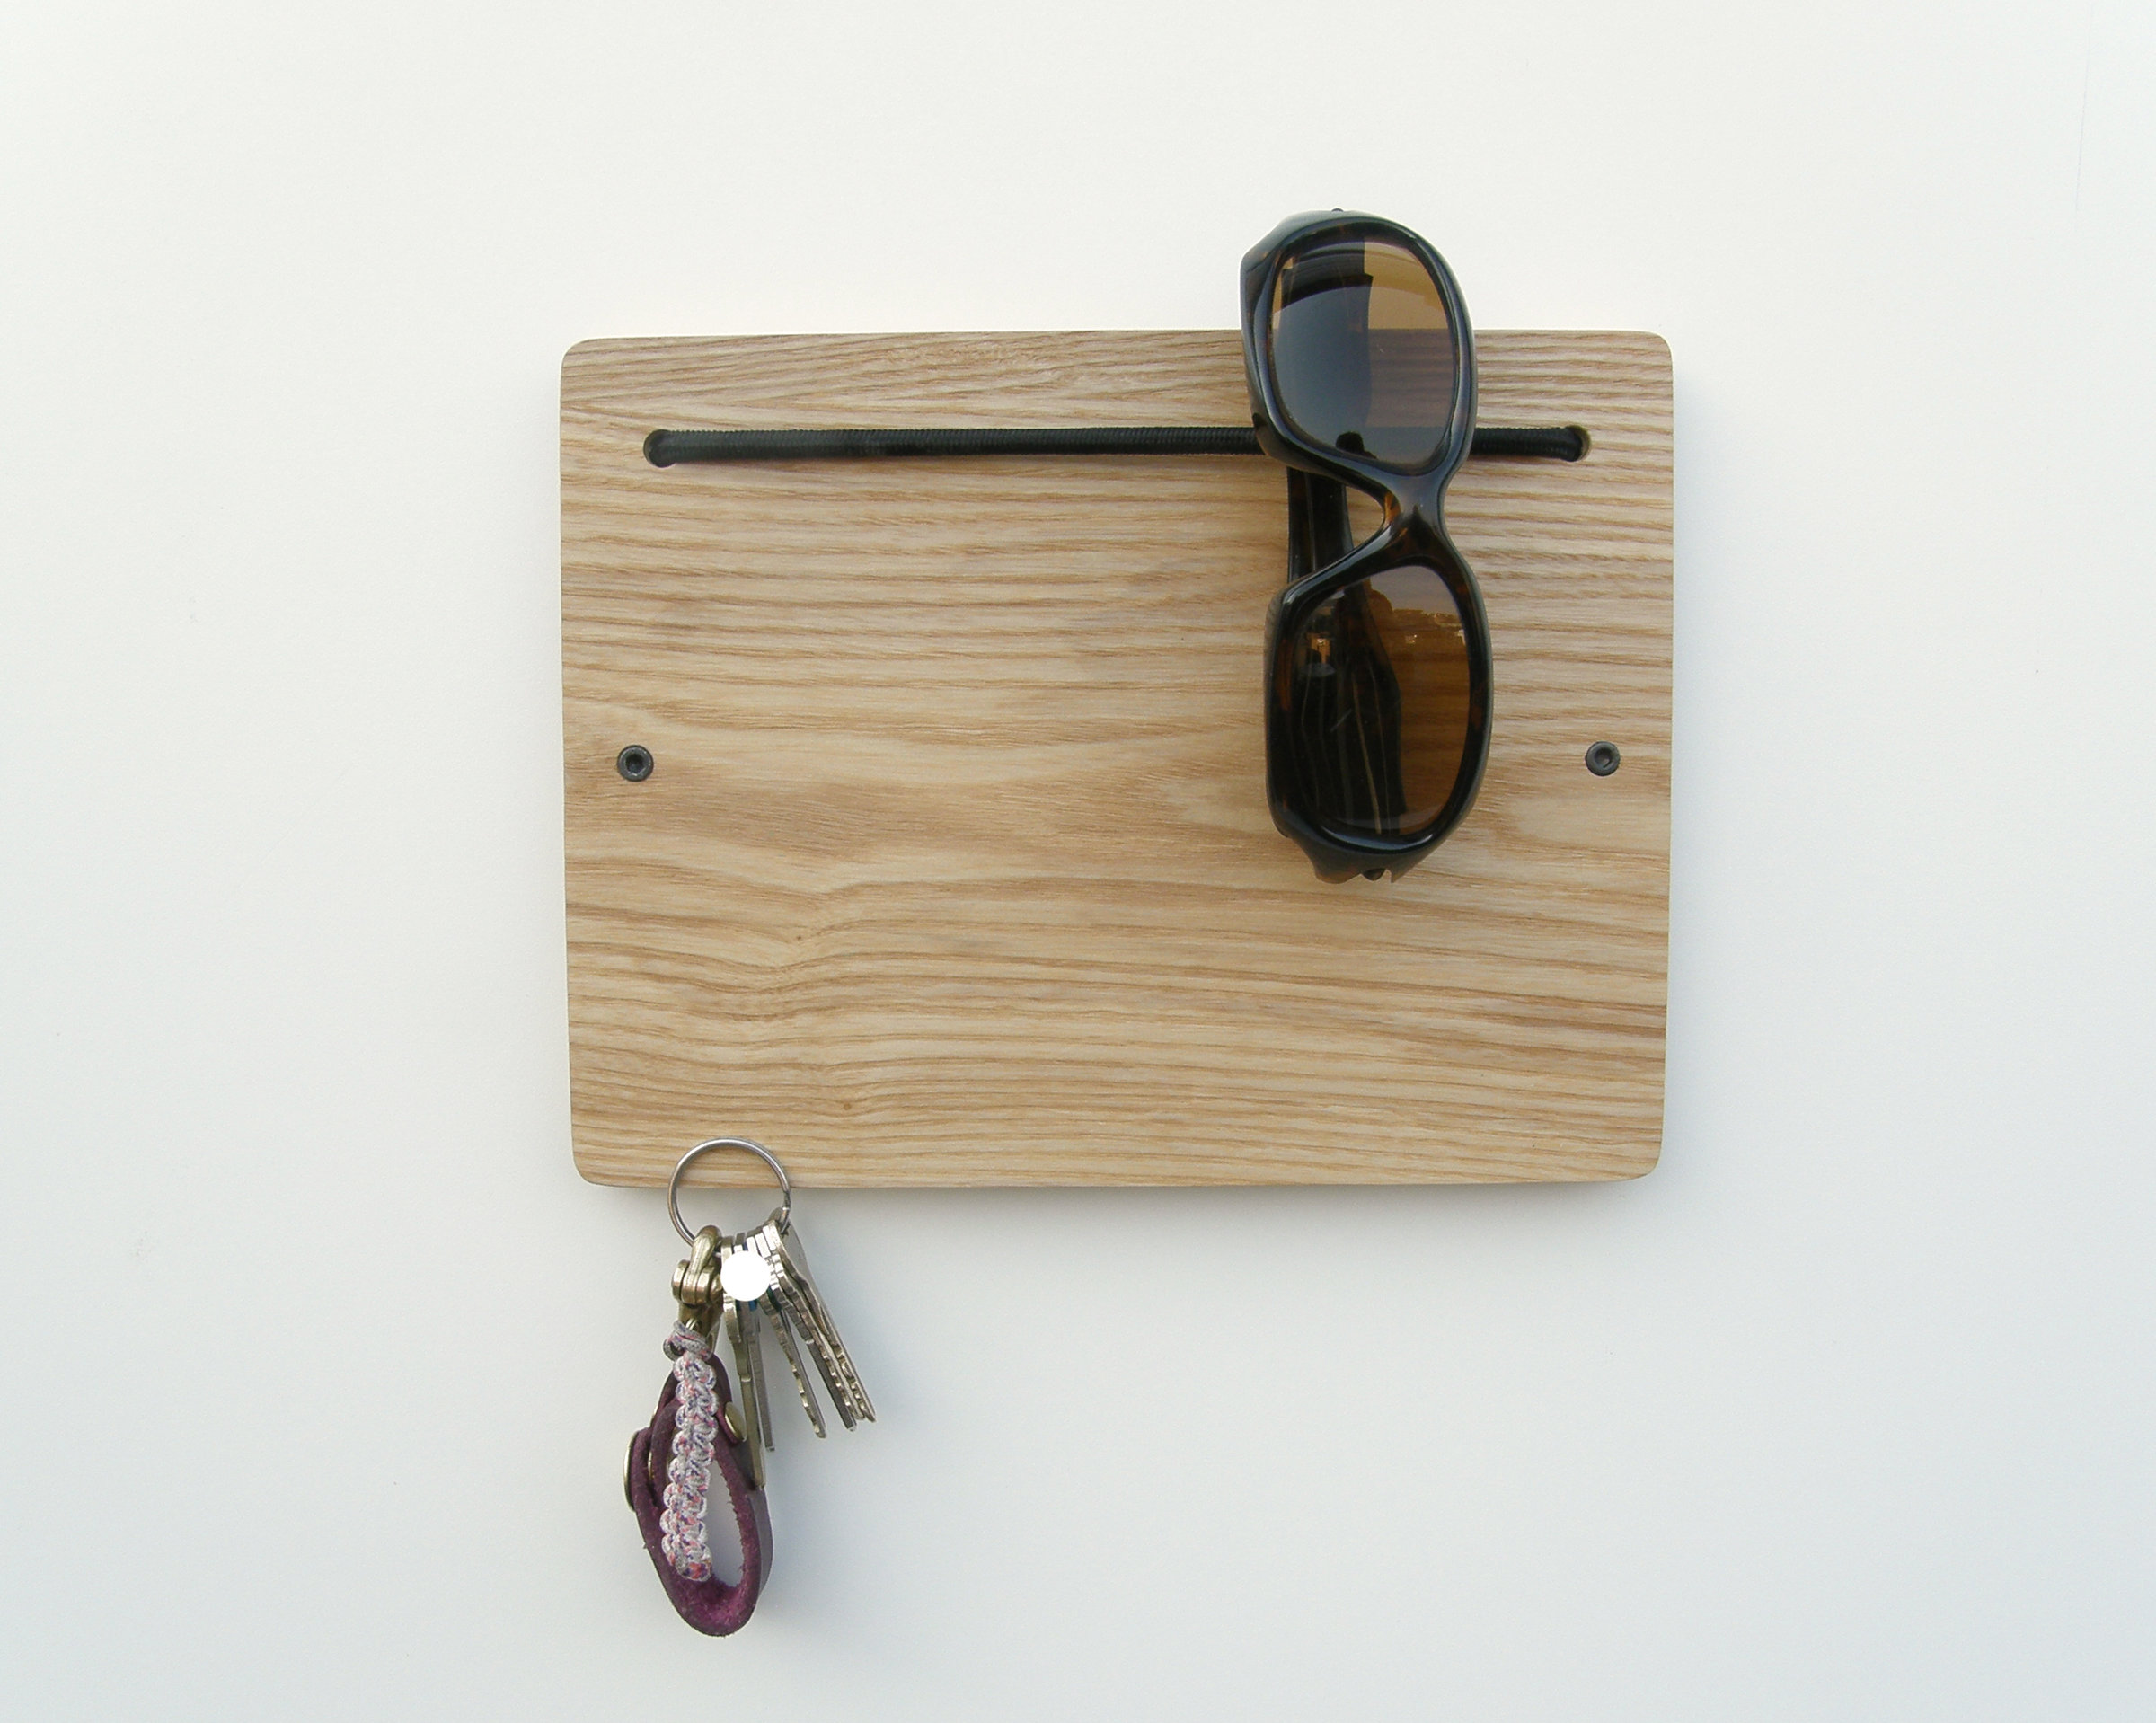 ... Holder in Ash by Brad Reed Nelson (Wood Wall Organizer) | Artful Home